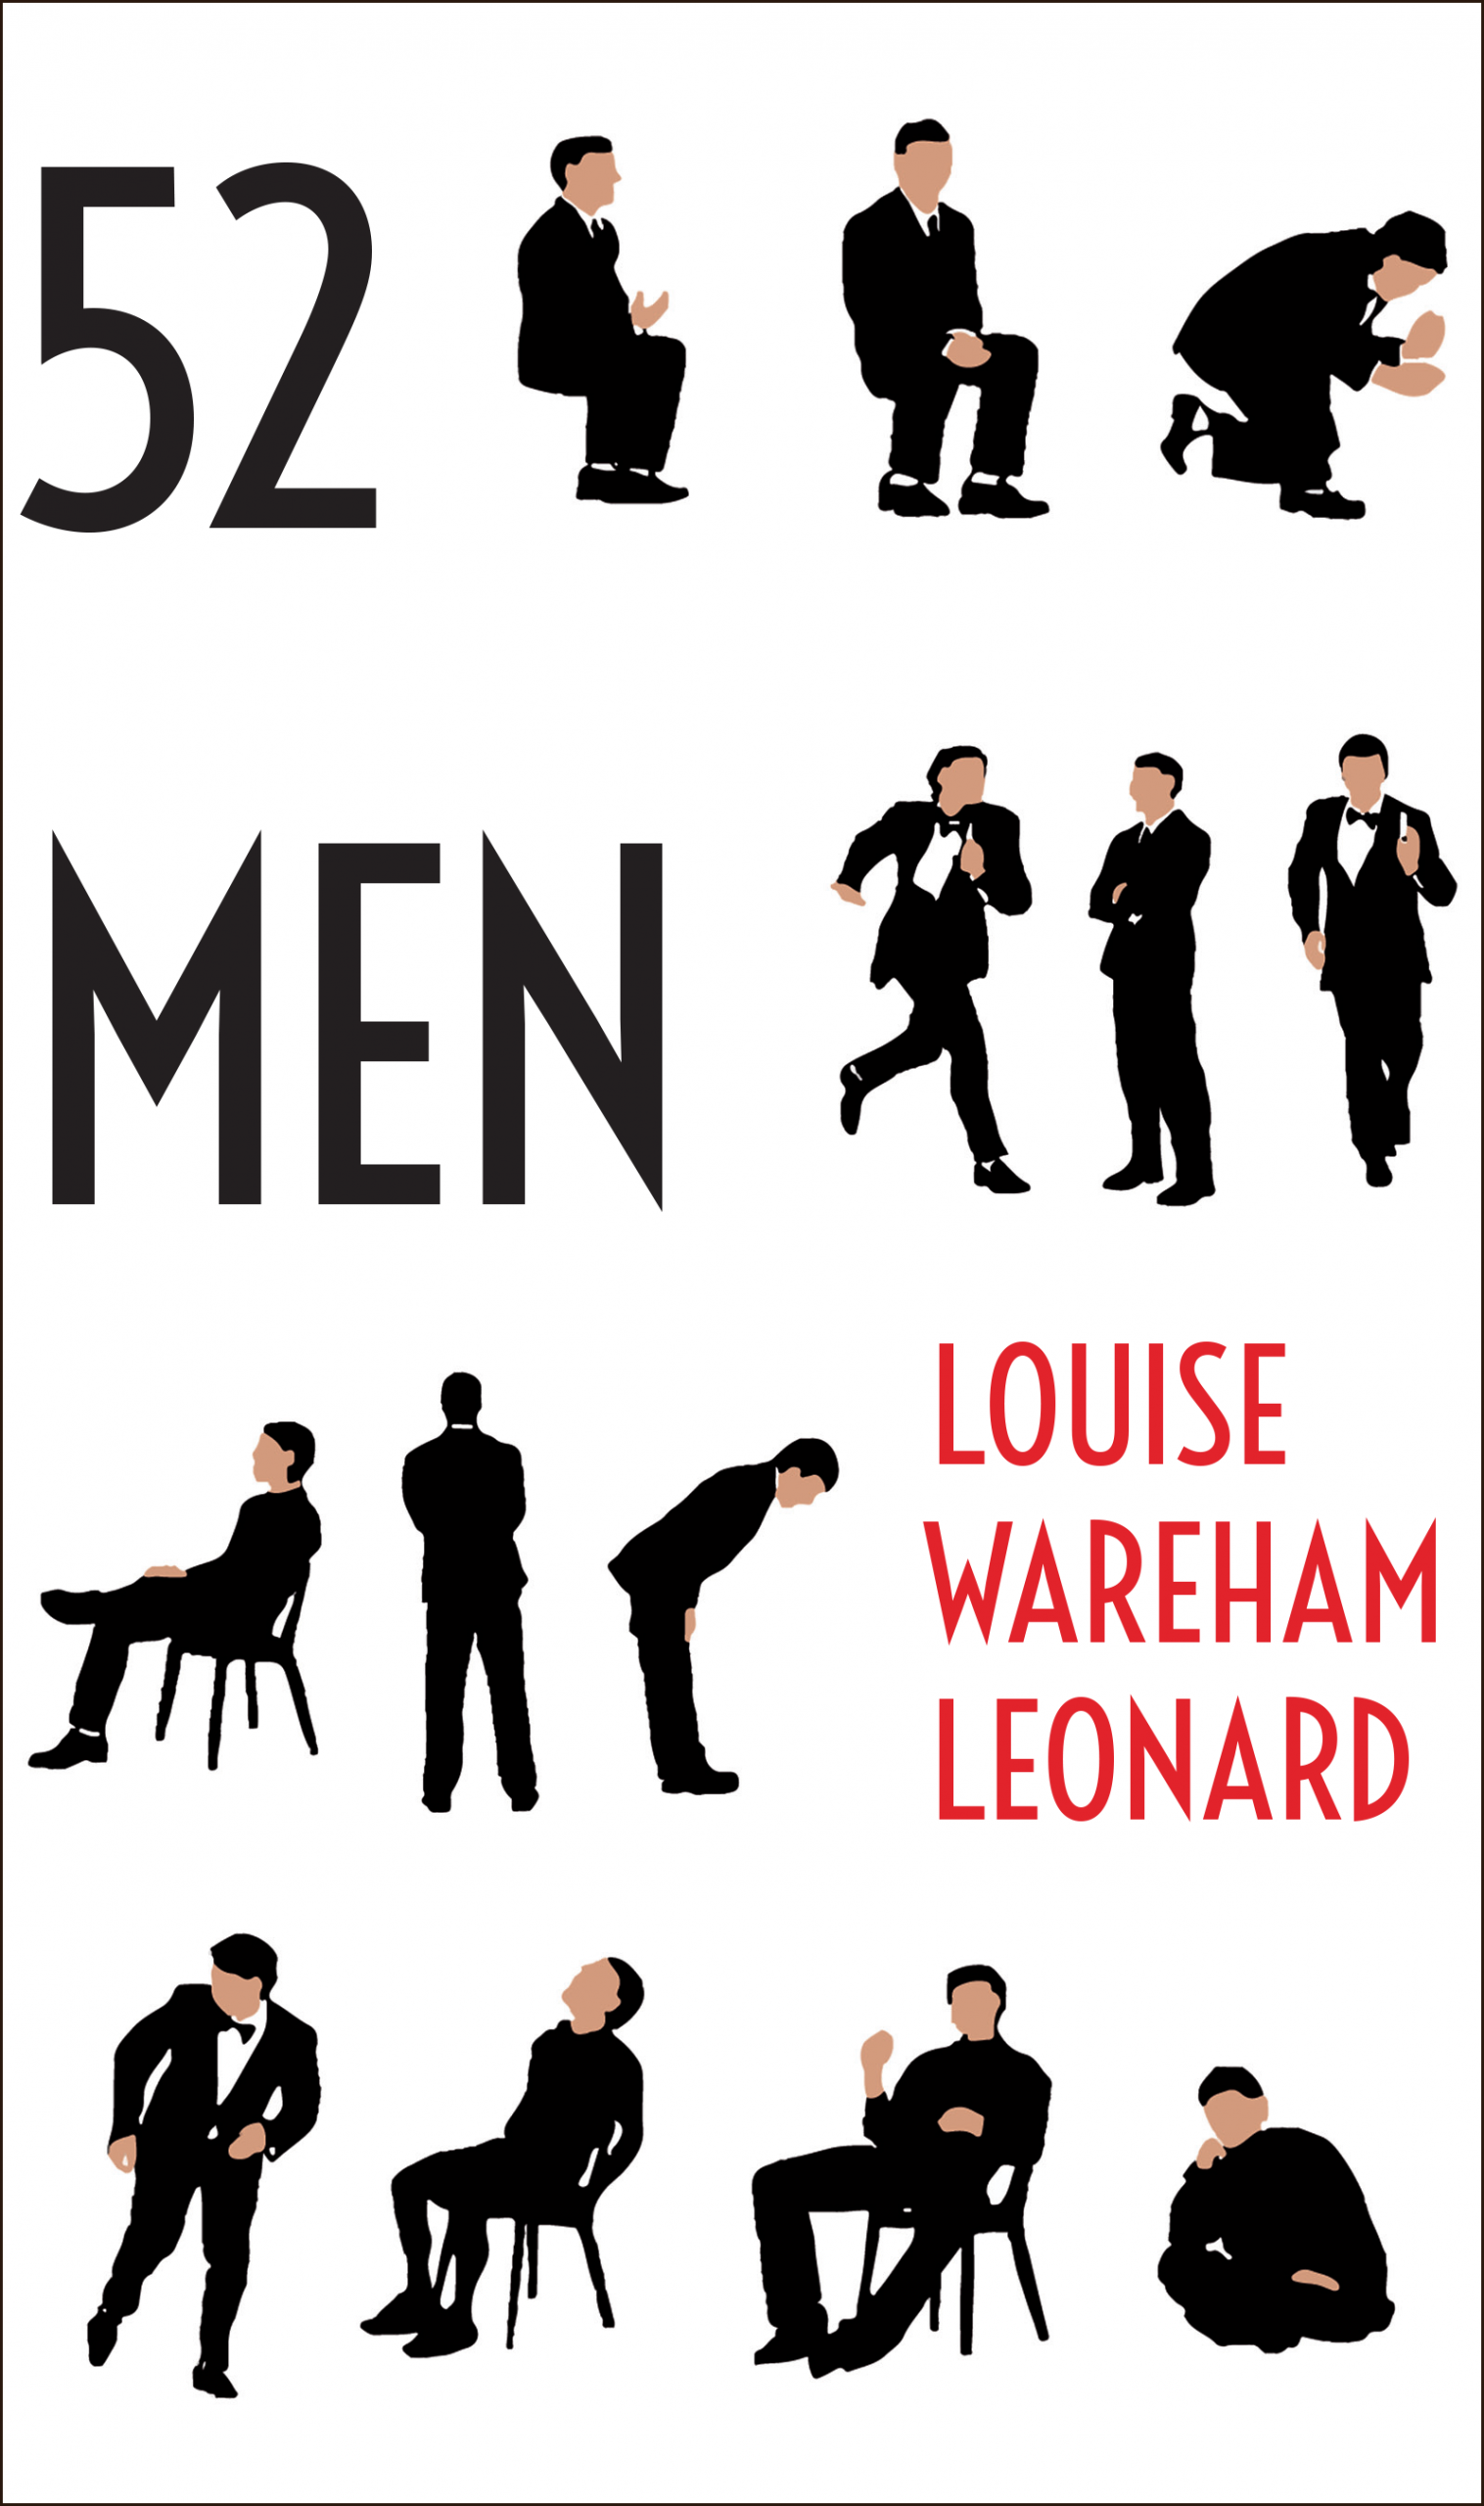 """Black text on a white background says """"52 Men,"""" red text says """"Louise Warehem Leonard,"""" 13 drawings of men in suits surround the text"""